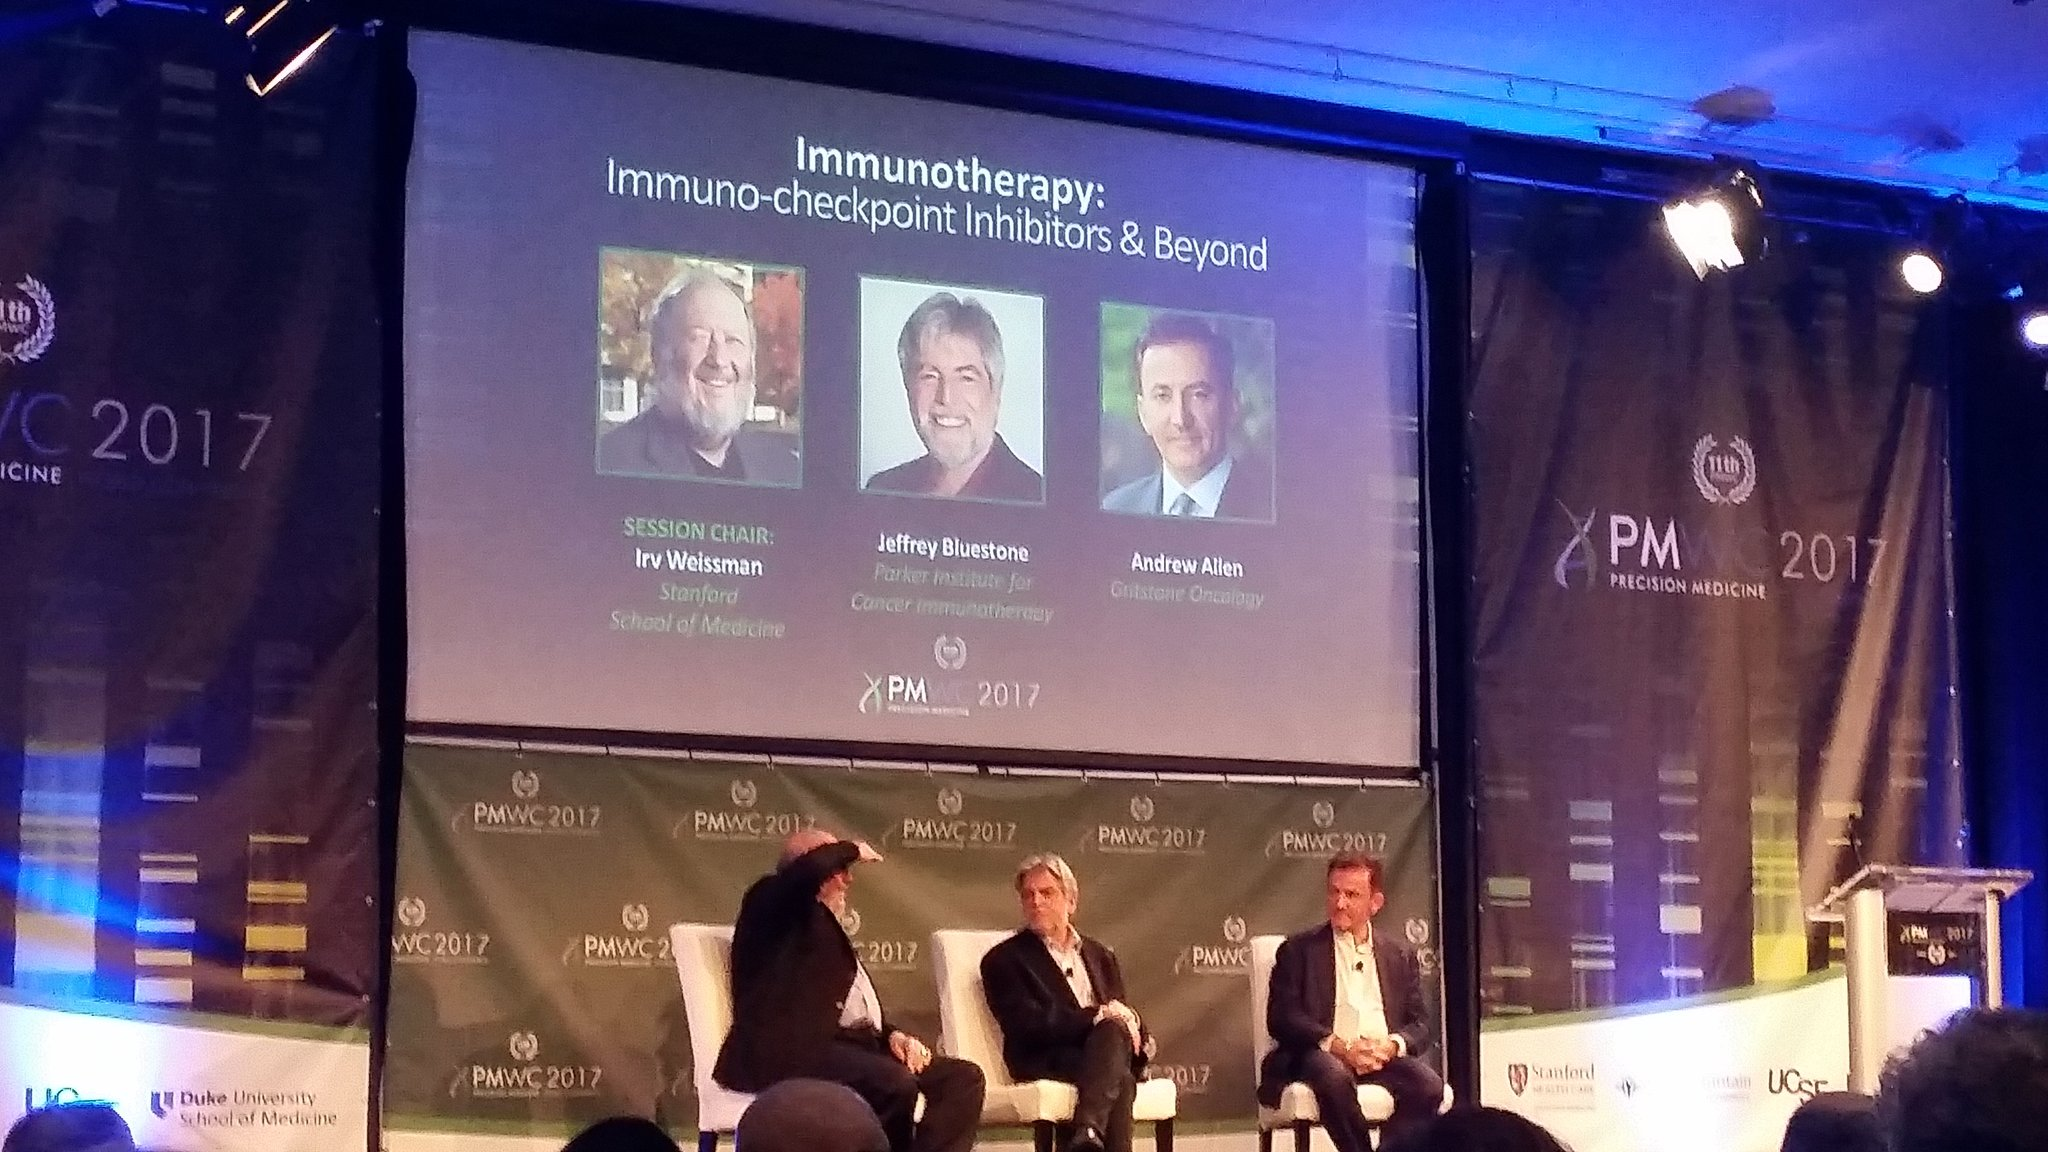 Fantastic session followed by great panel discussion! #immunotherapy #PMWC17 https://t.co/dl6af5Zwqn